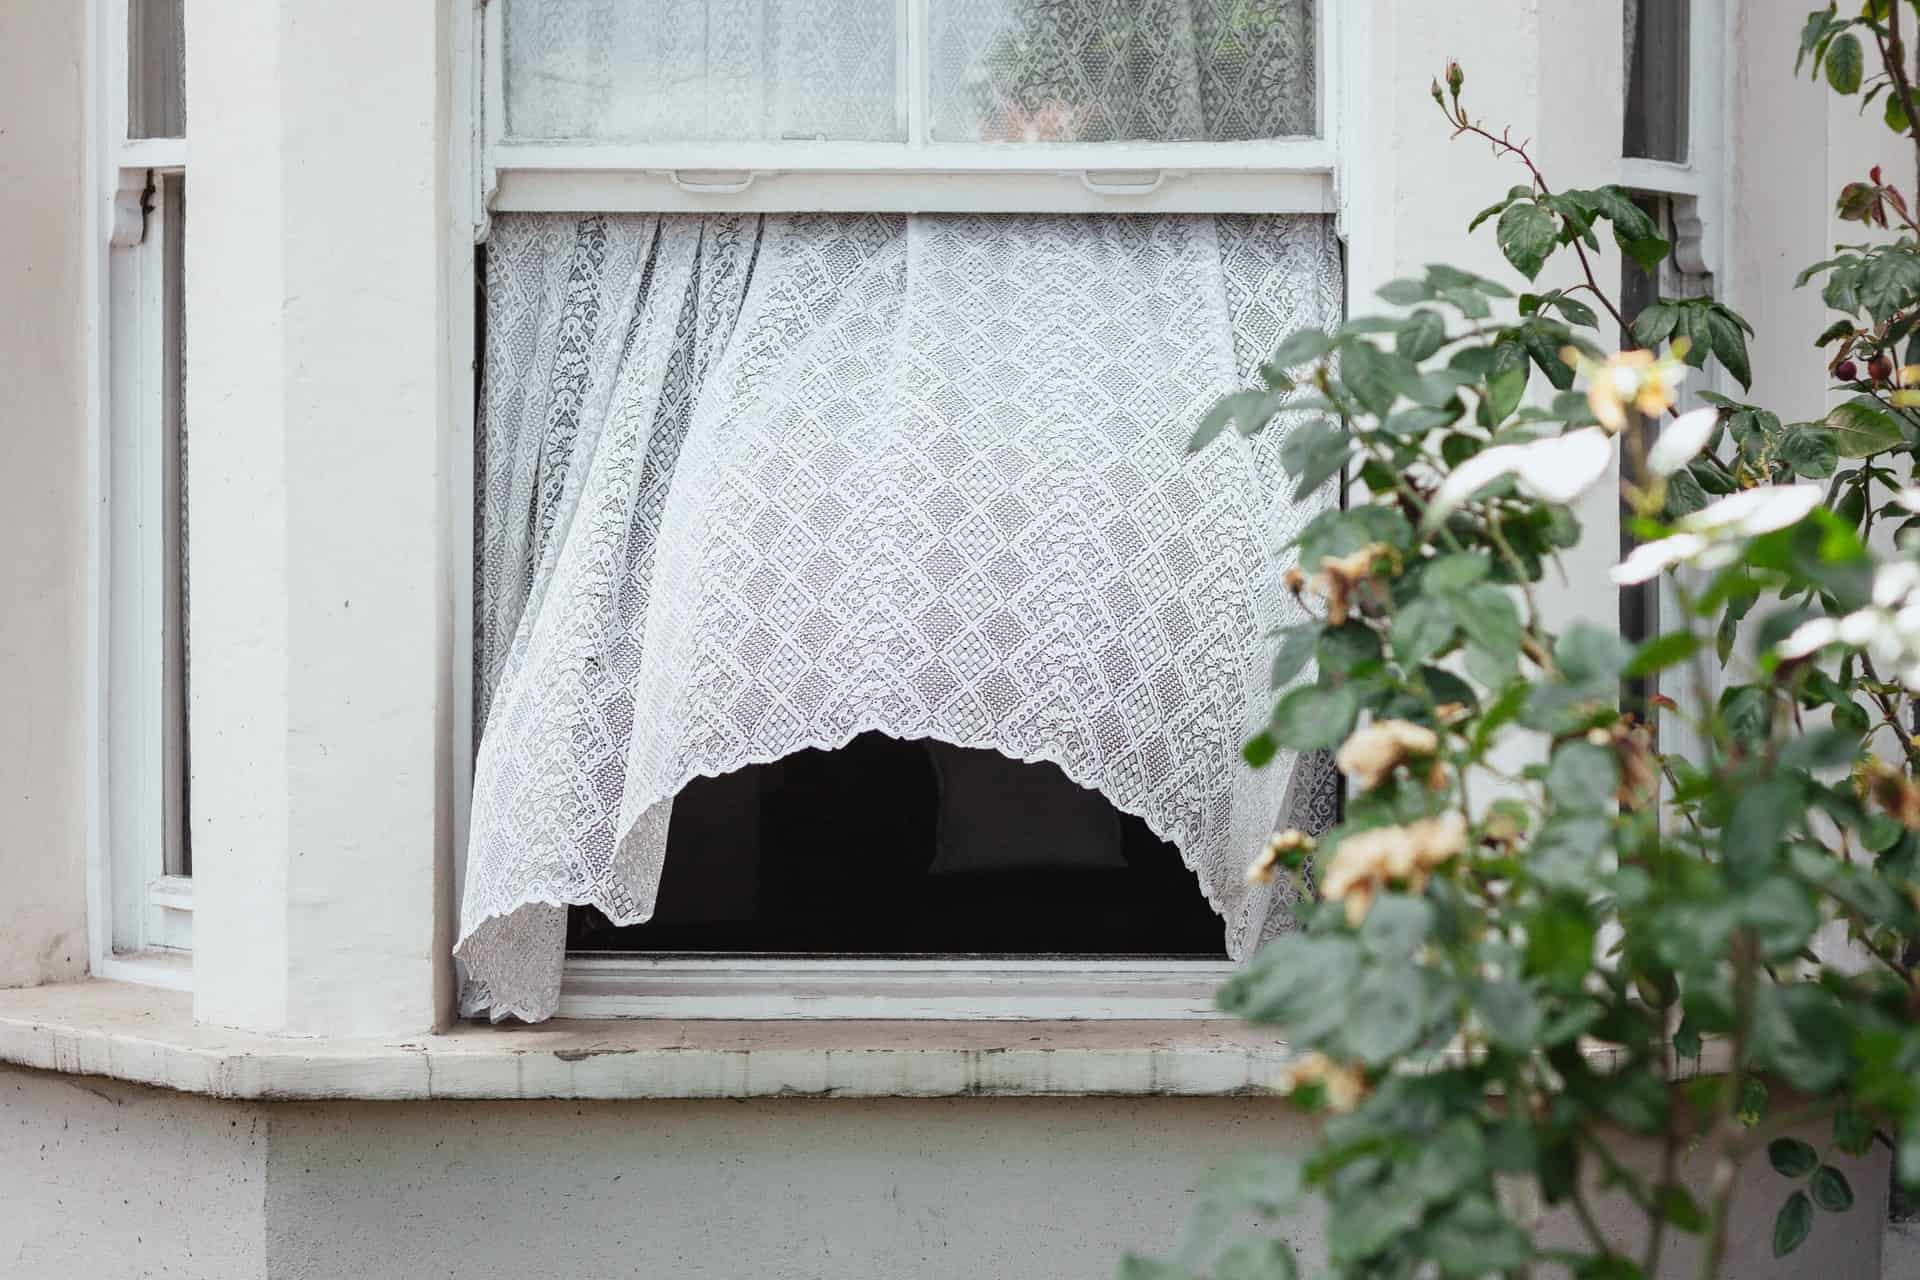 How Long Should You Leave Your Window Open?